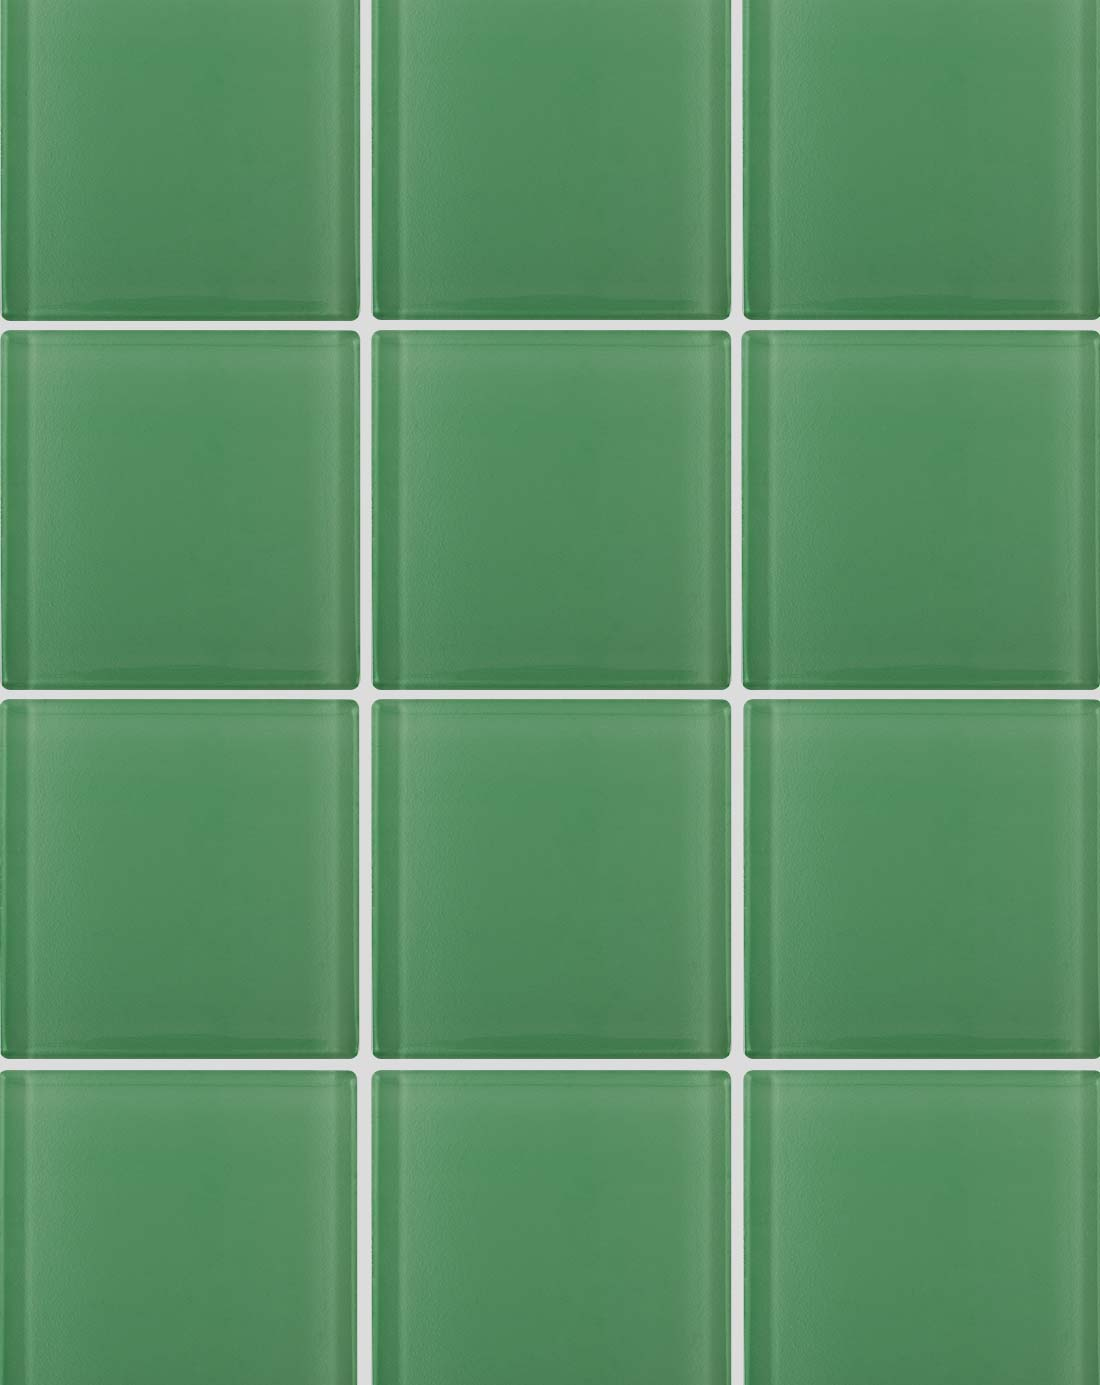 Mirage Green 100 X 100mm Bathroom Tiles Direct